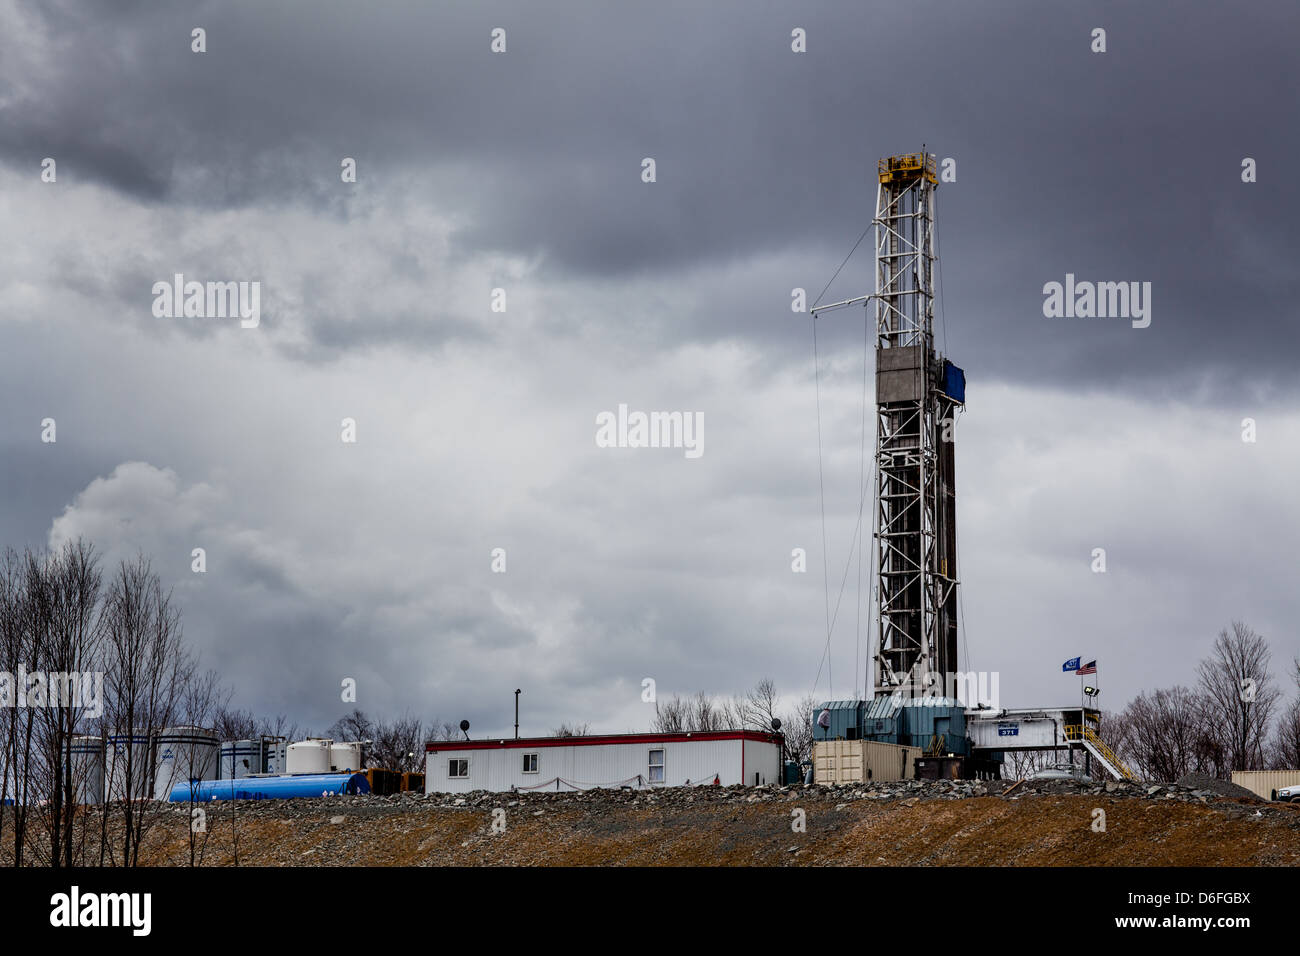 Construction of a hydrofracking drilling rig, Dimock, Pennsylvania - Stock Image